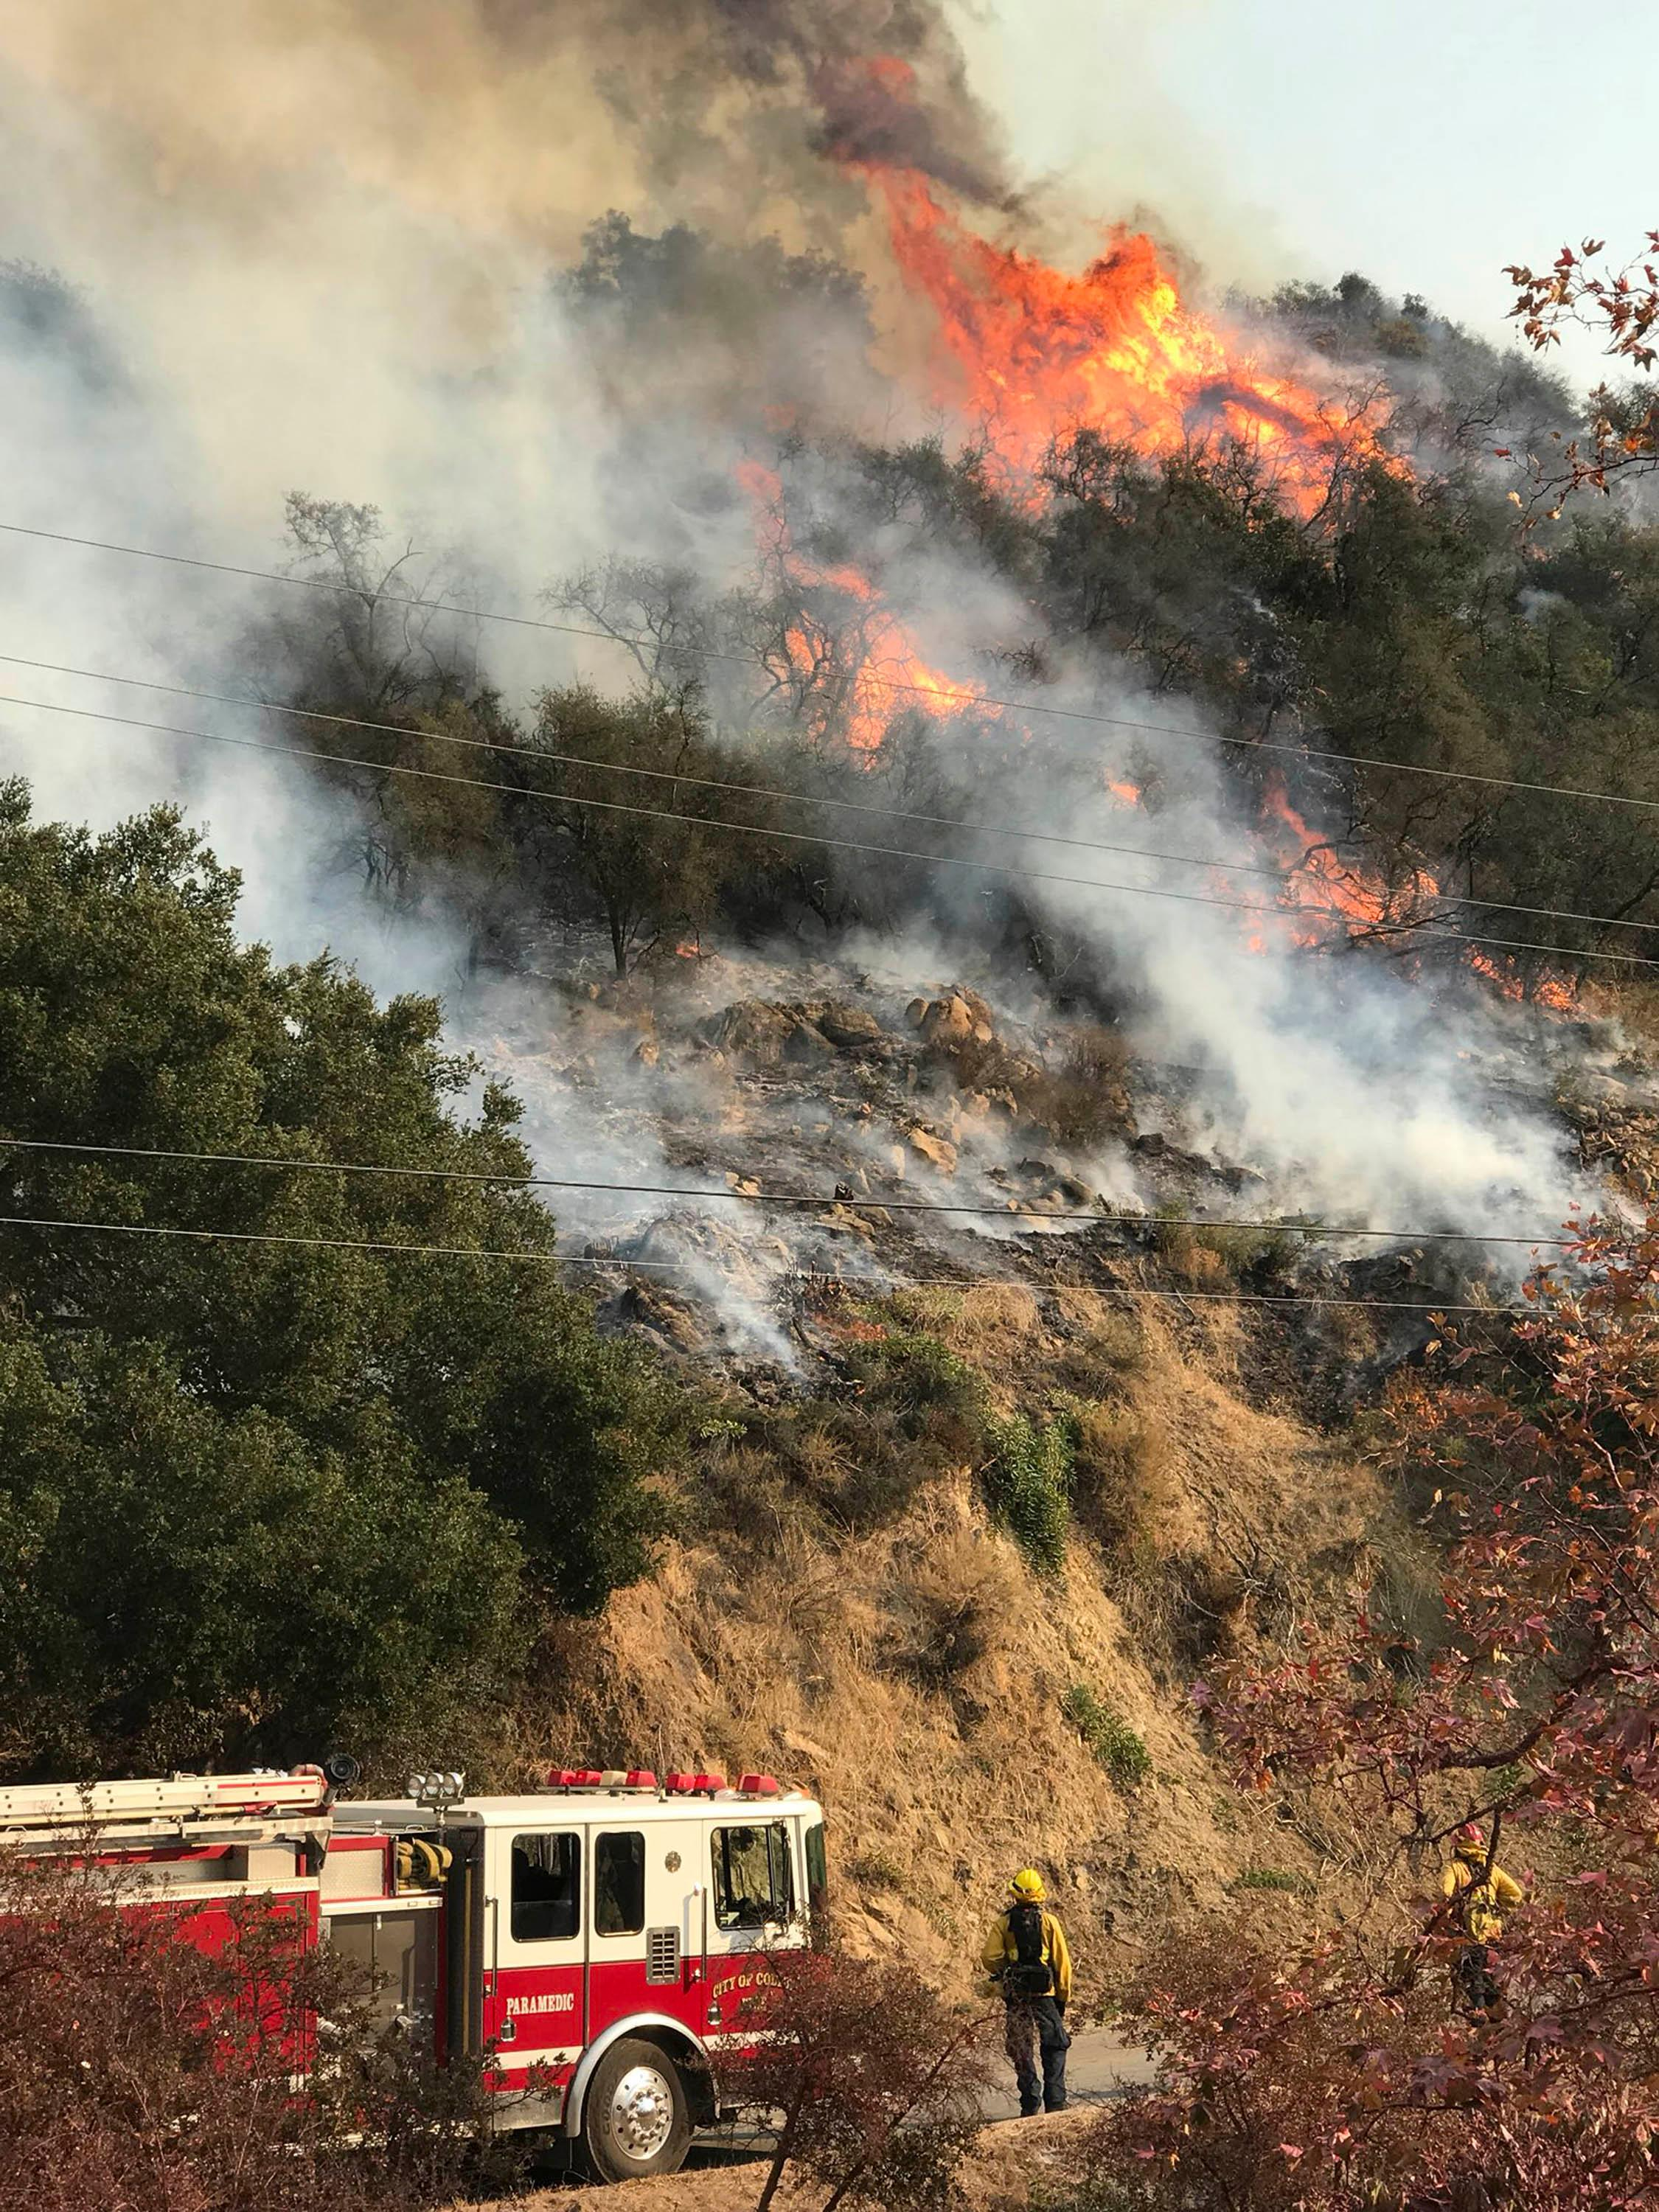 In this photo provided by the Santa Barbara County Fire Department, an engine company from the city of Colton, Calif., operating under mutual aid, keeps watch on pockets of burning and unburned vegetation off Bella Vista Dr. in Montecito, Calif., Wednesday, Dec. 13, 2017. After announcing increased containment on the Thomas fire, one of the biggest wildfires in California history, officials Wednesday warned that communities remain at risk and the threat could increase as unpredictable winds whip up again. (Mike Eliason/Santa Barbara County Fire Department via AP)